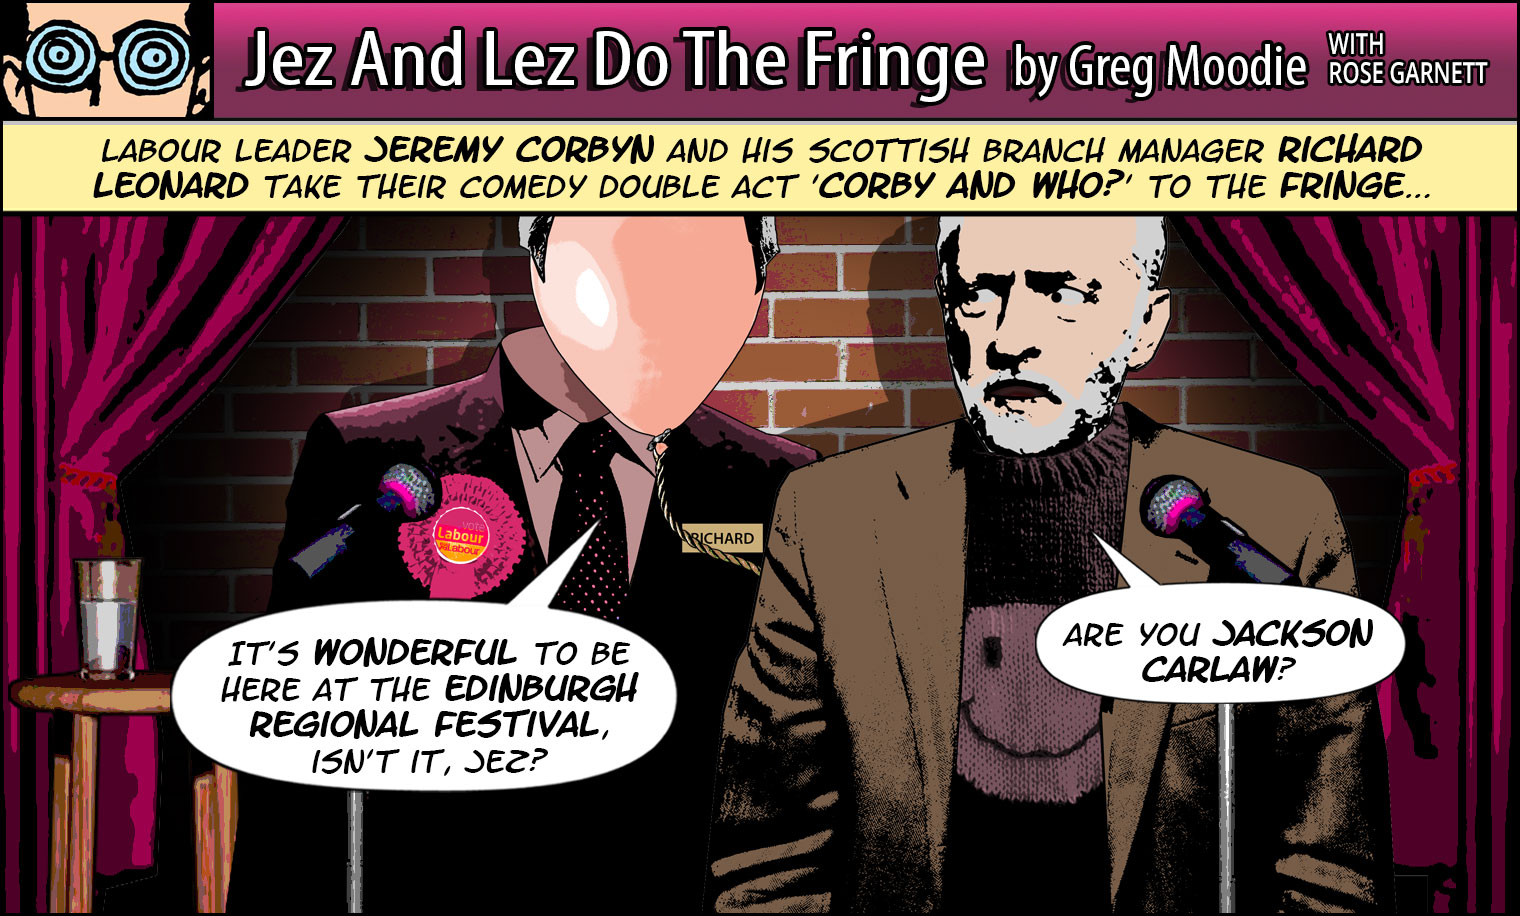 Jez And Lez Do The Fringe